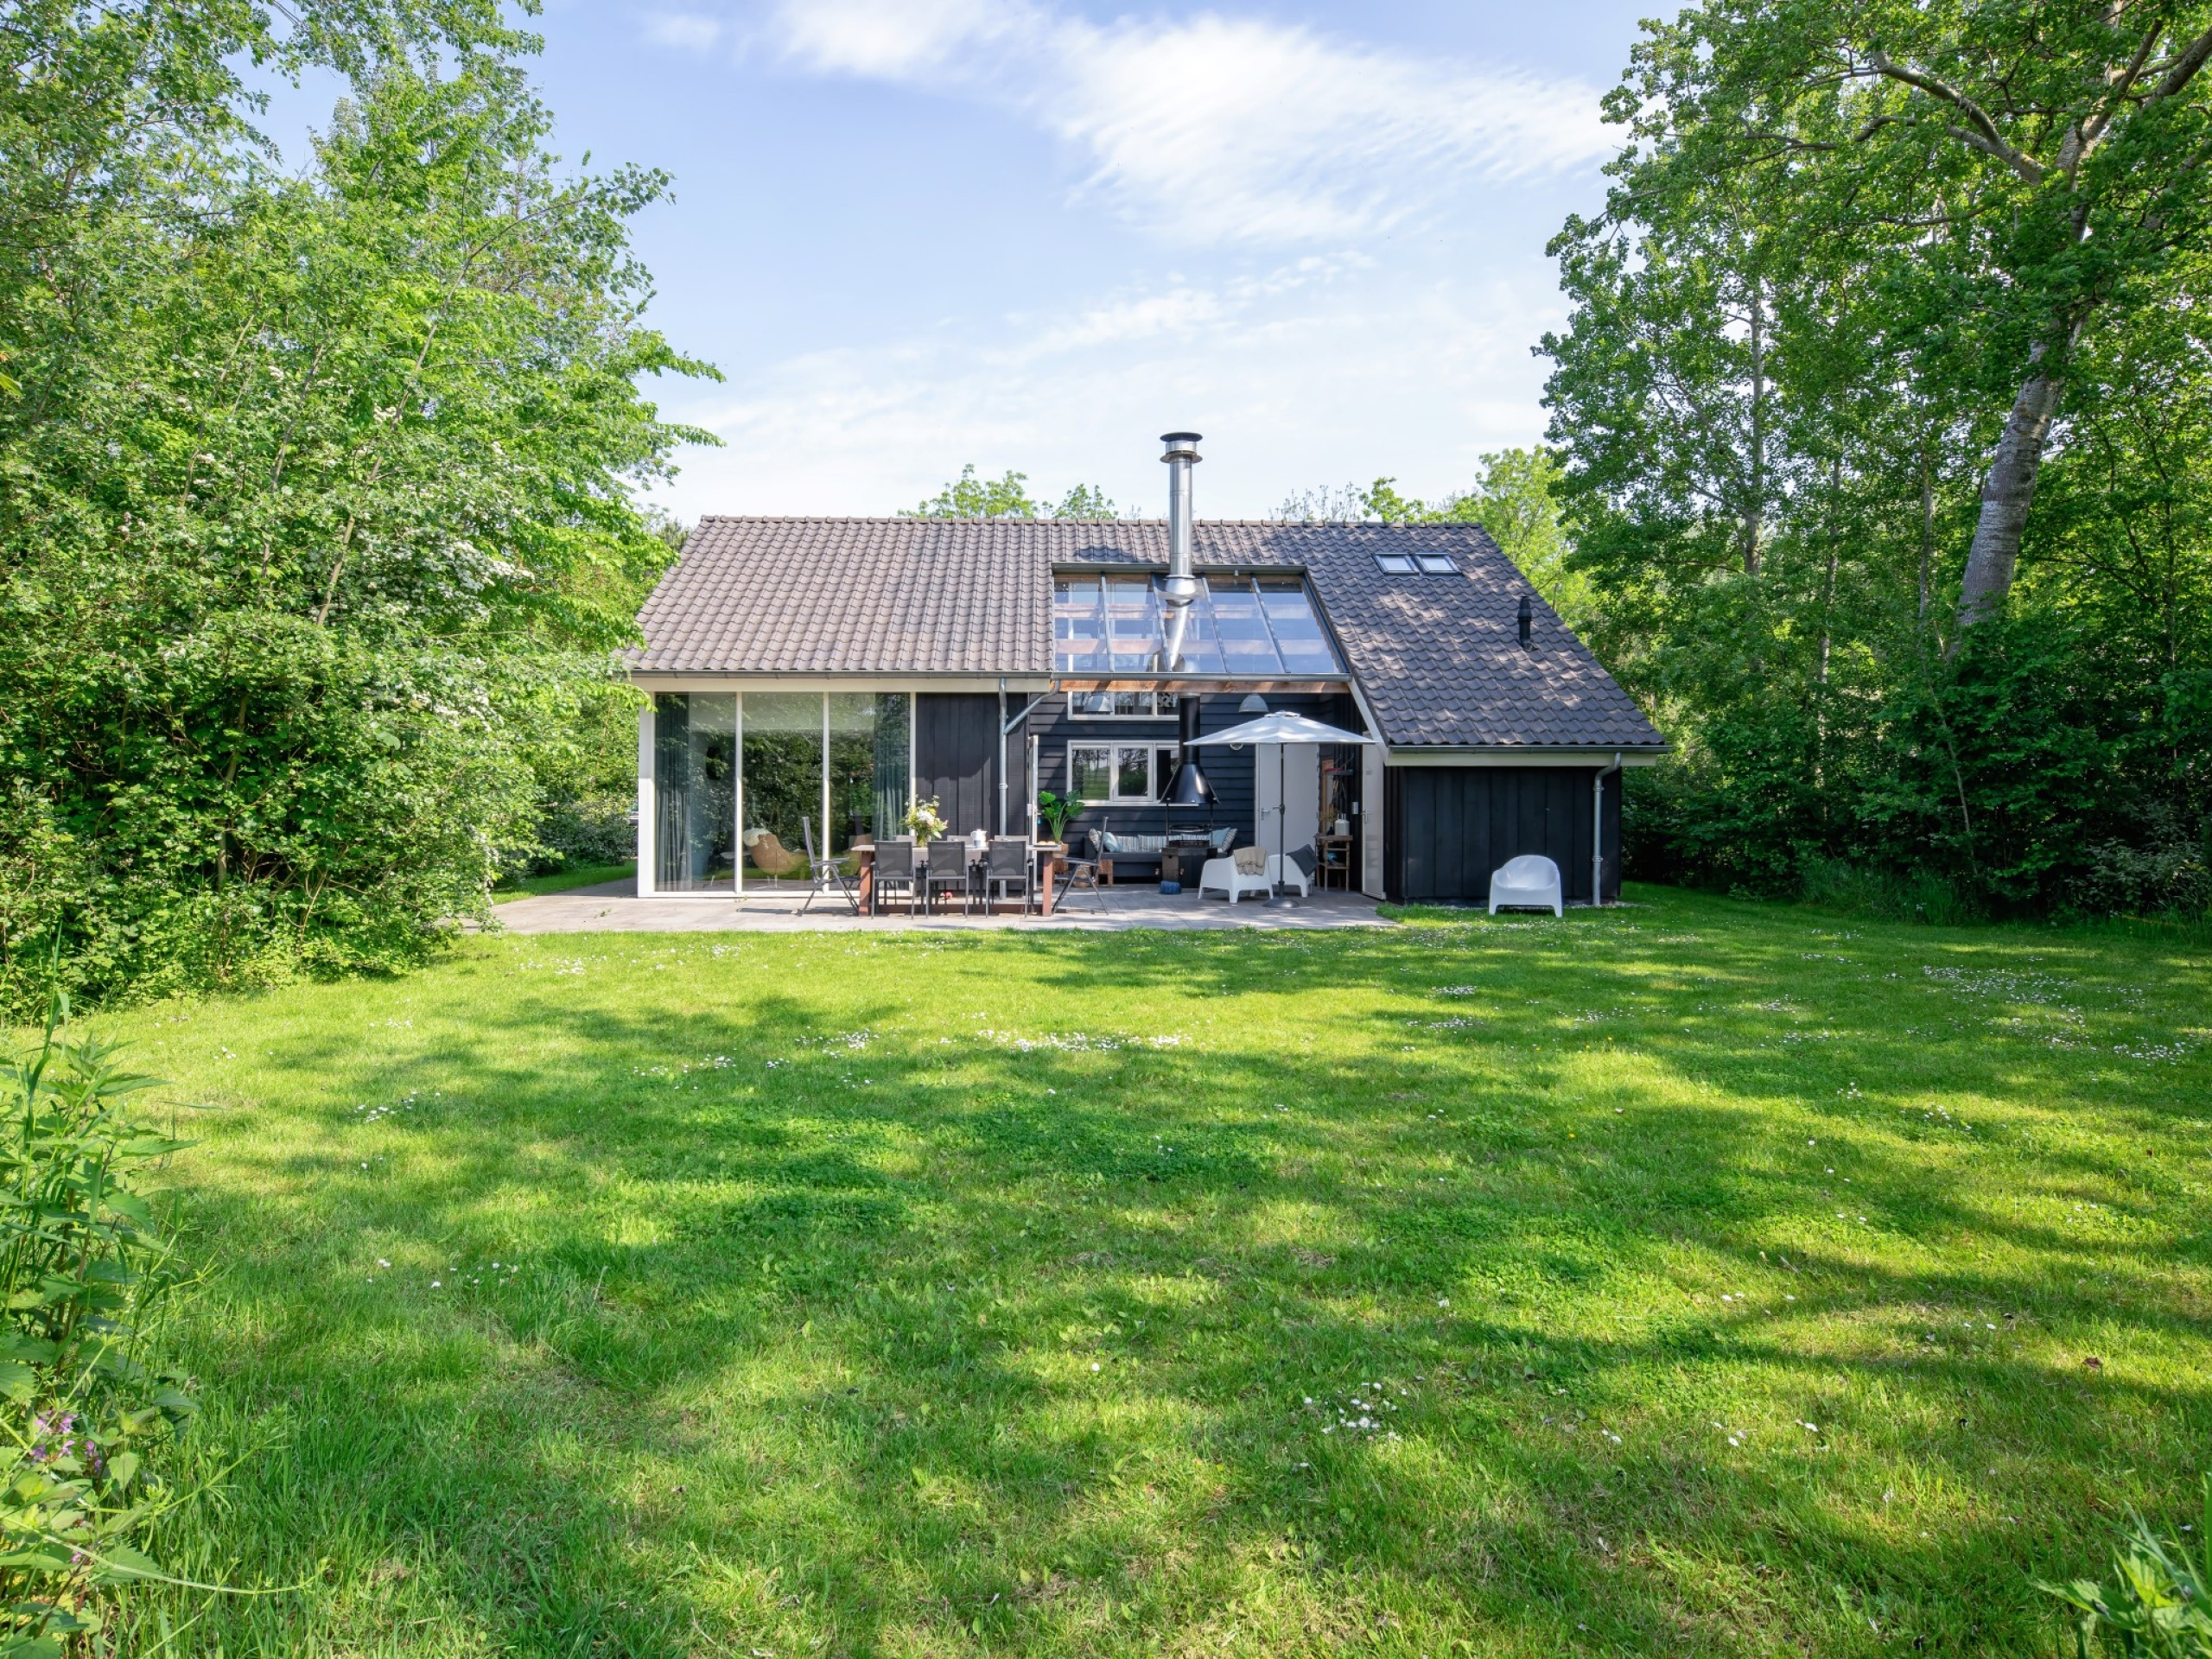 Attractive luxury holiday home with Finnish sauna, large garden and outdoor fireplace / barbecue